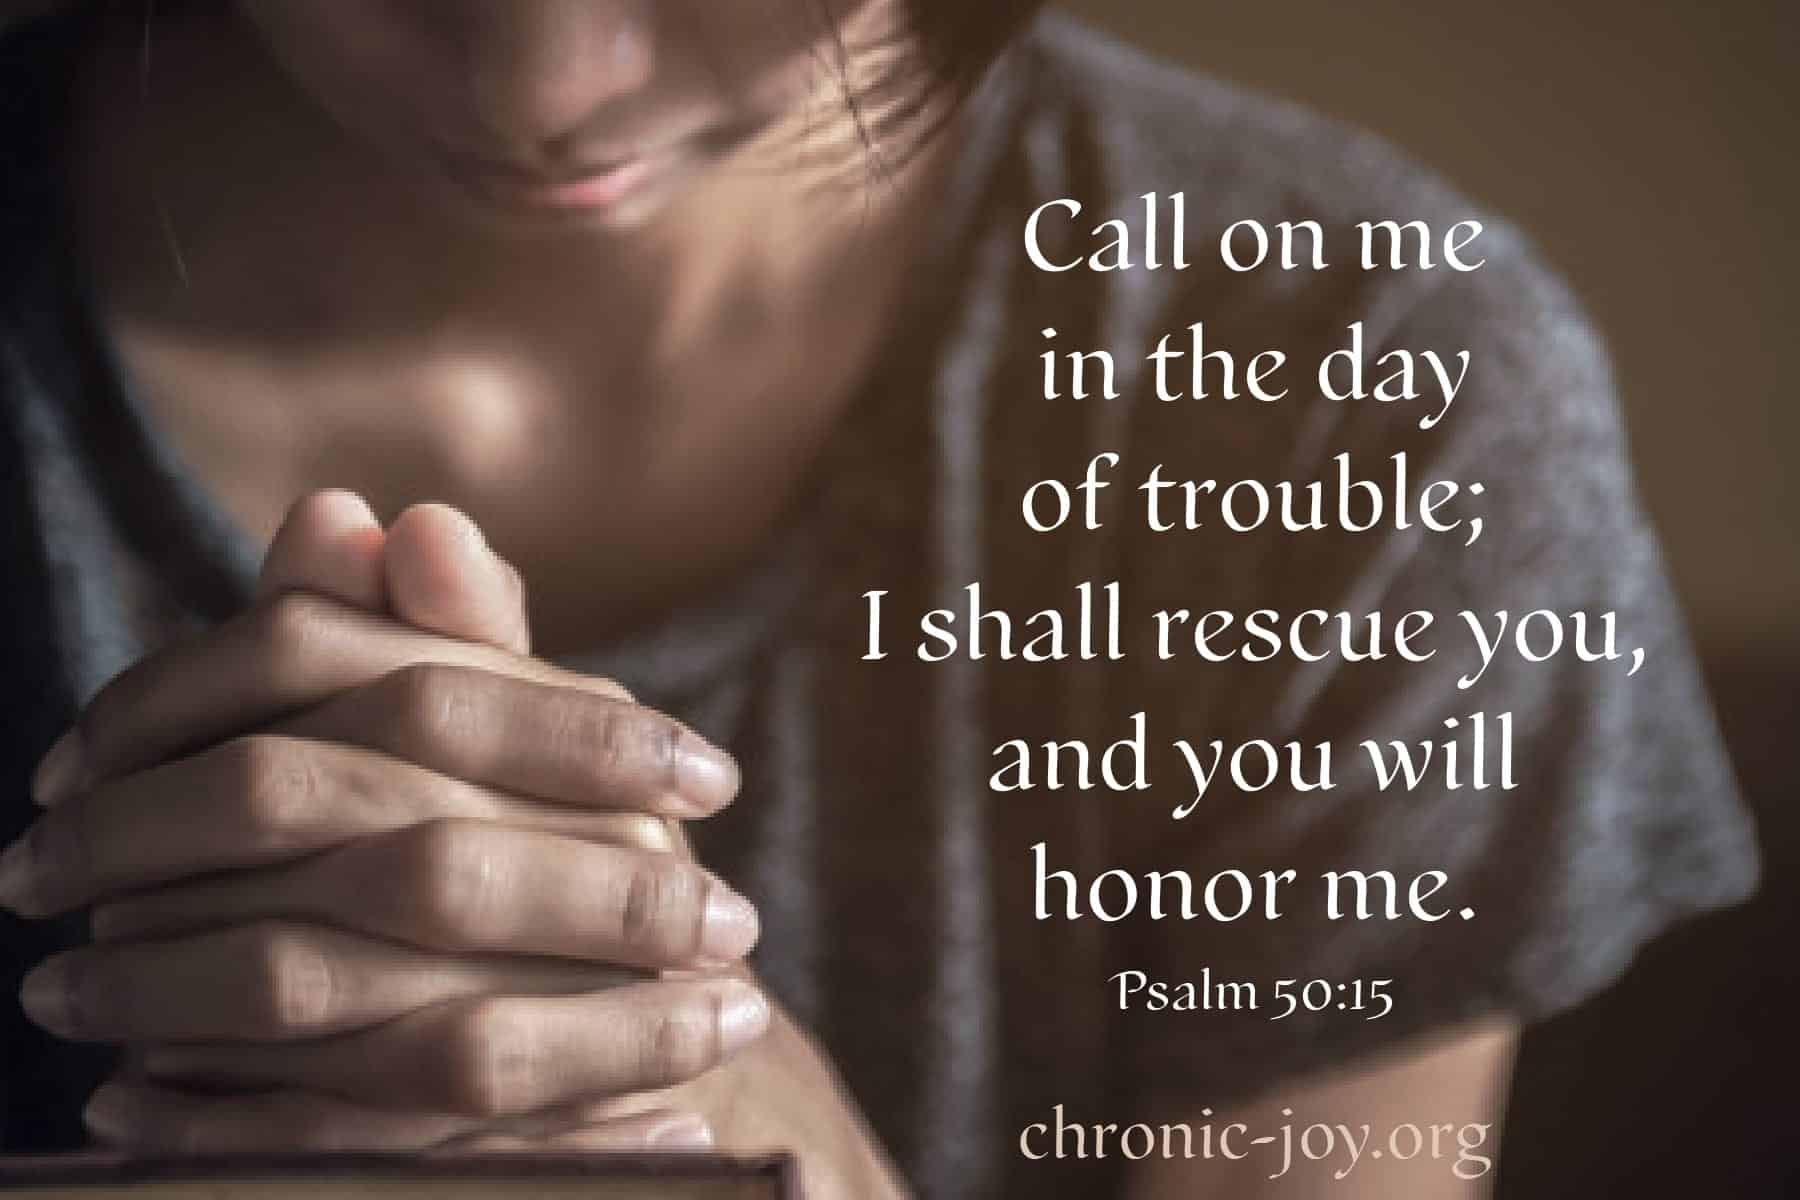 Call on me in the day of trouble;